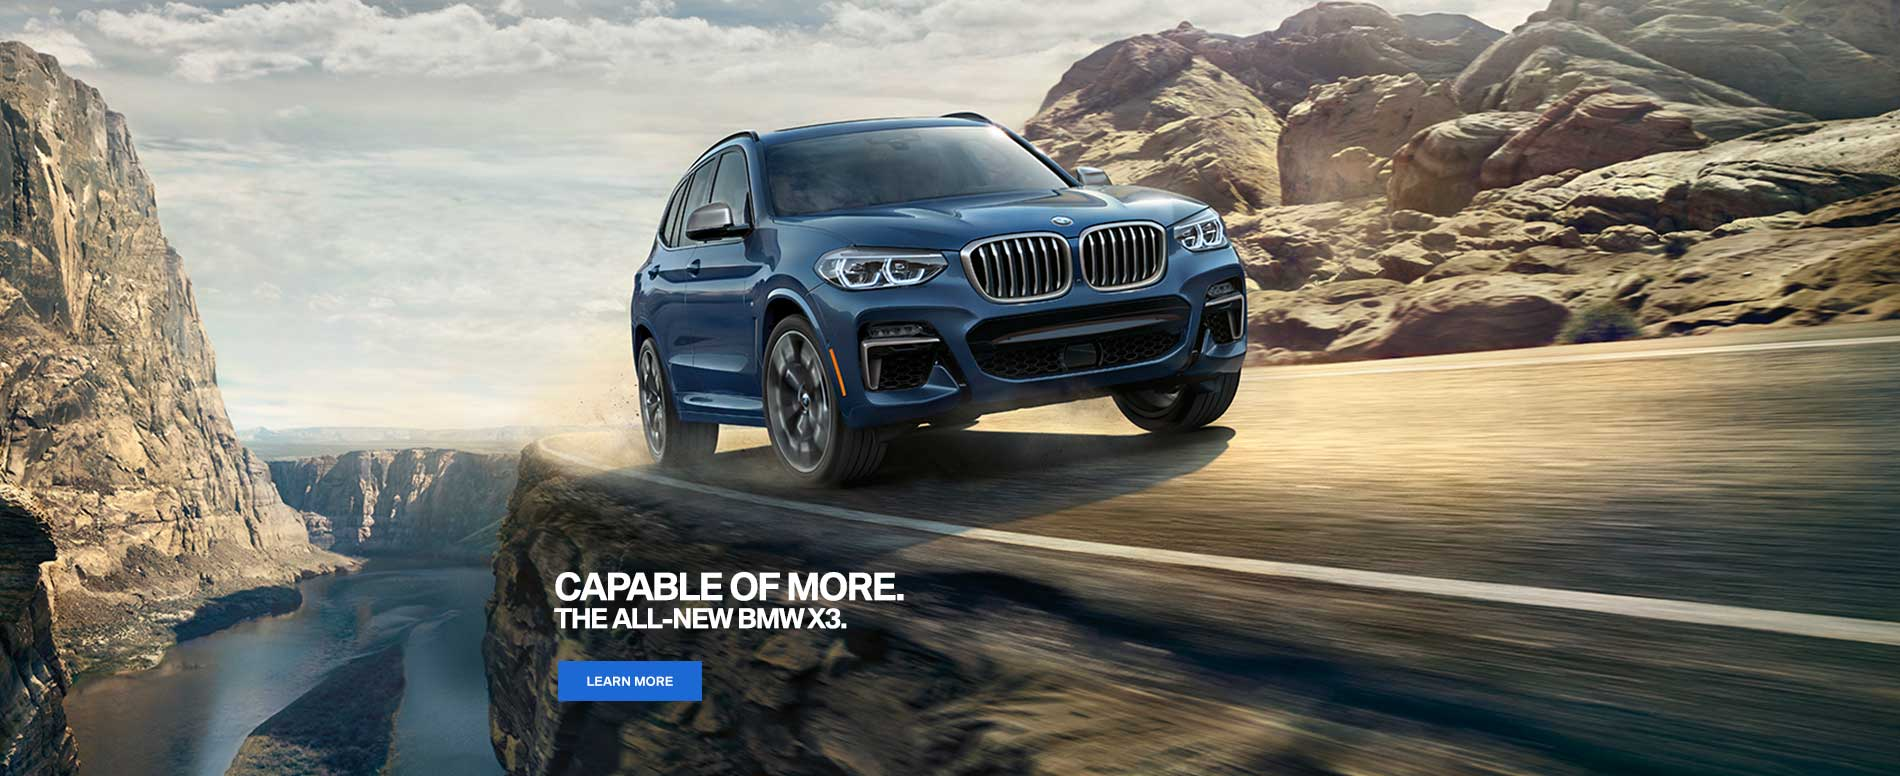 BMW Central Region Lease Offer